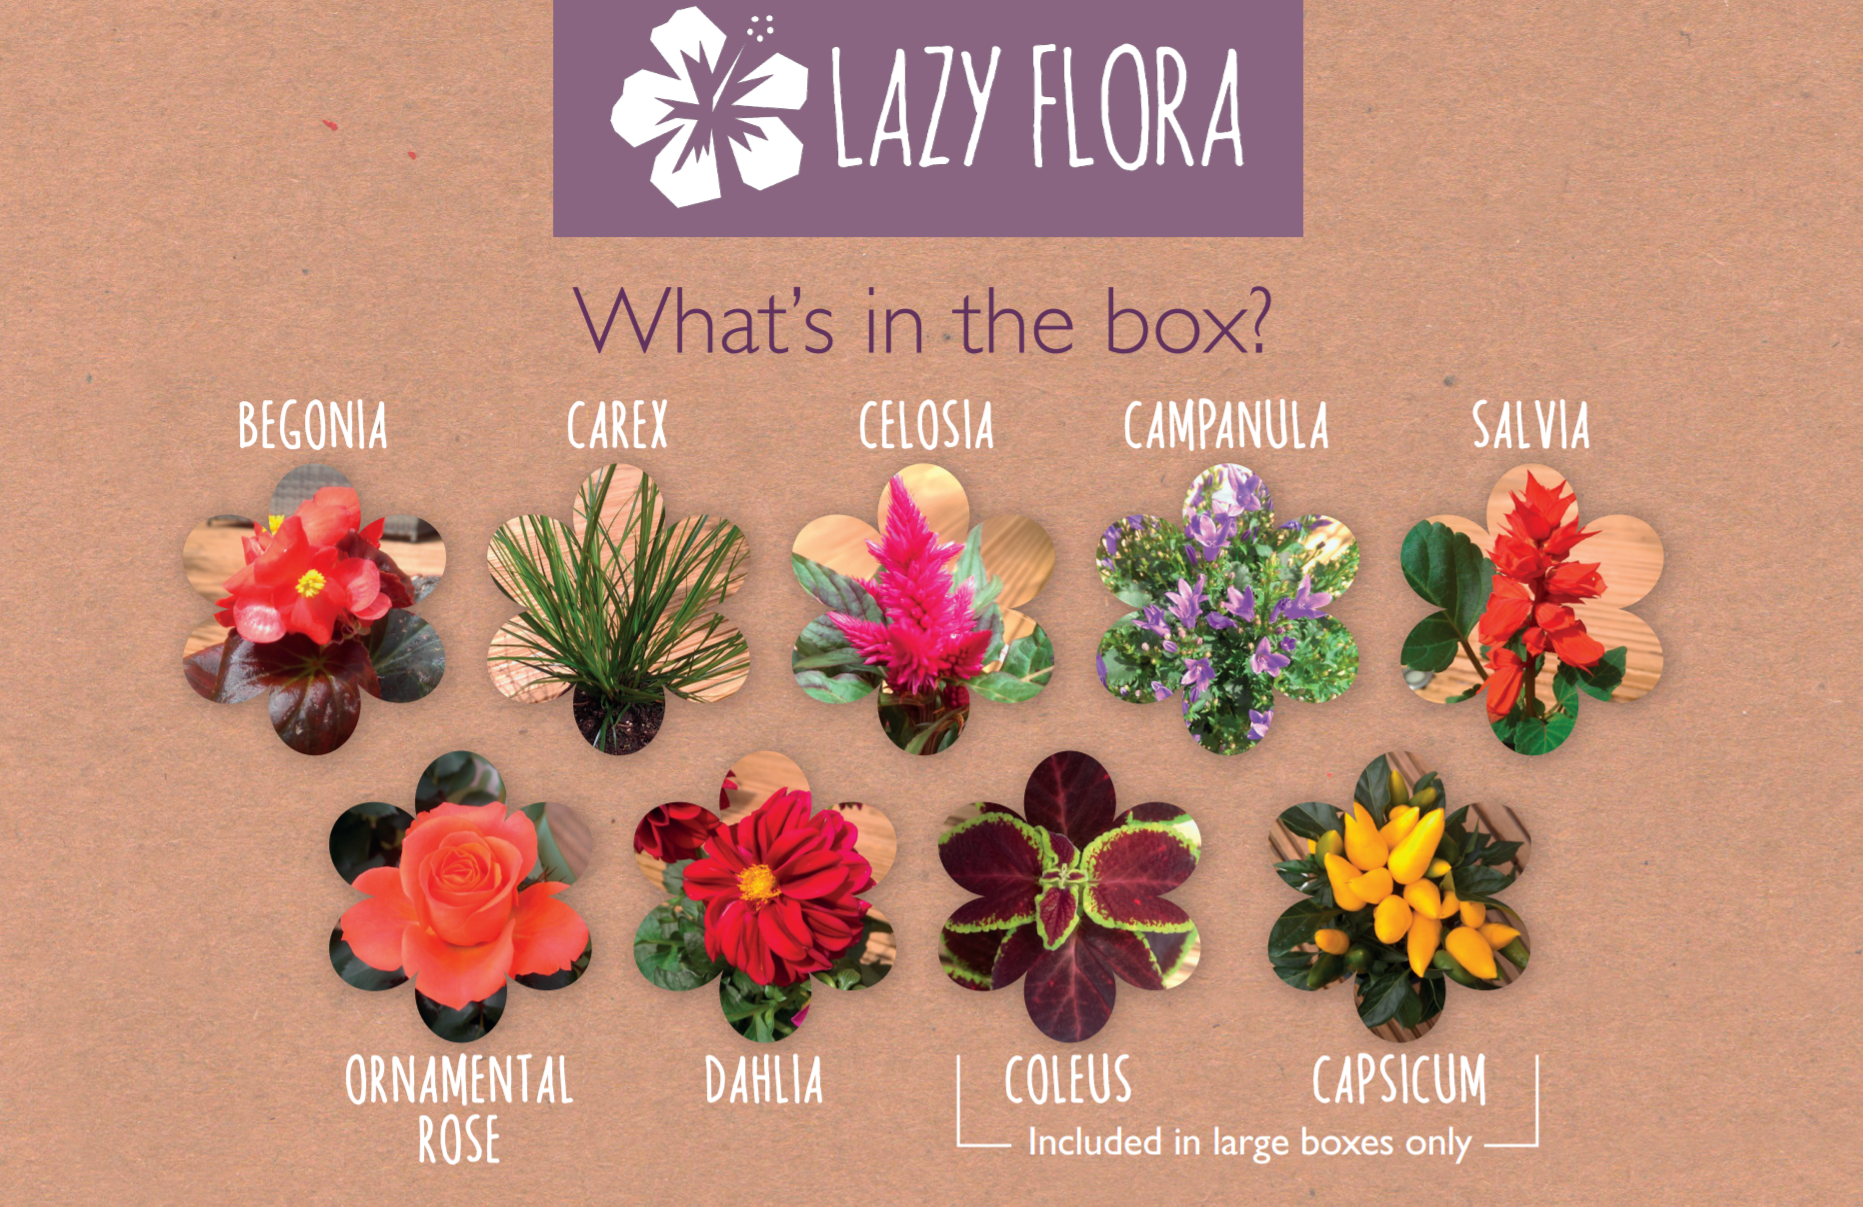 Lazy Flora Indian Summer plant collections contents